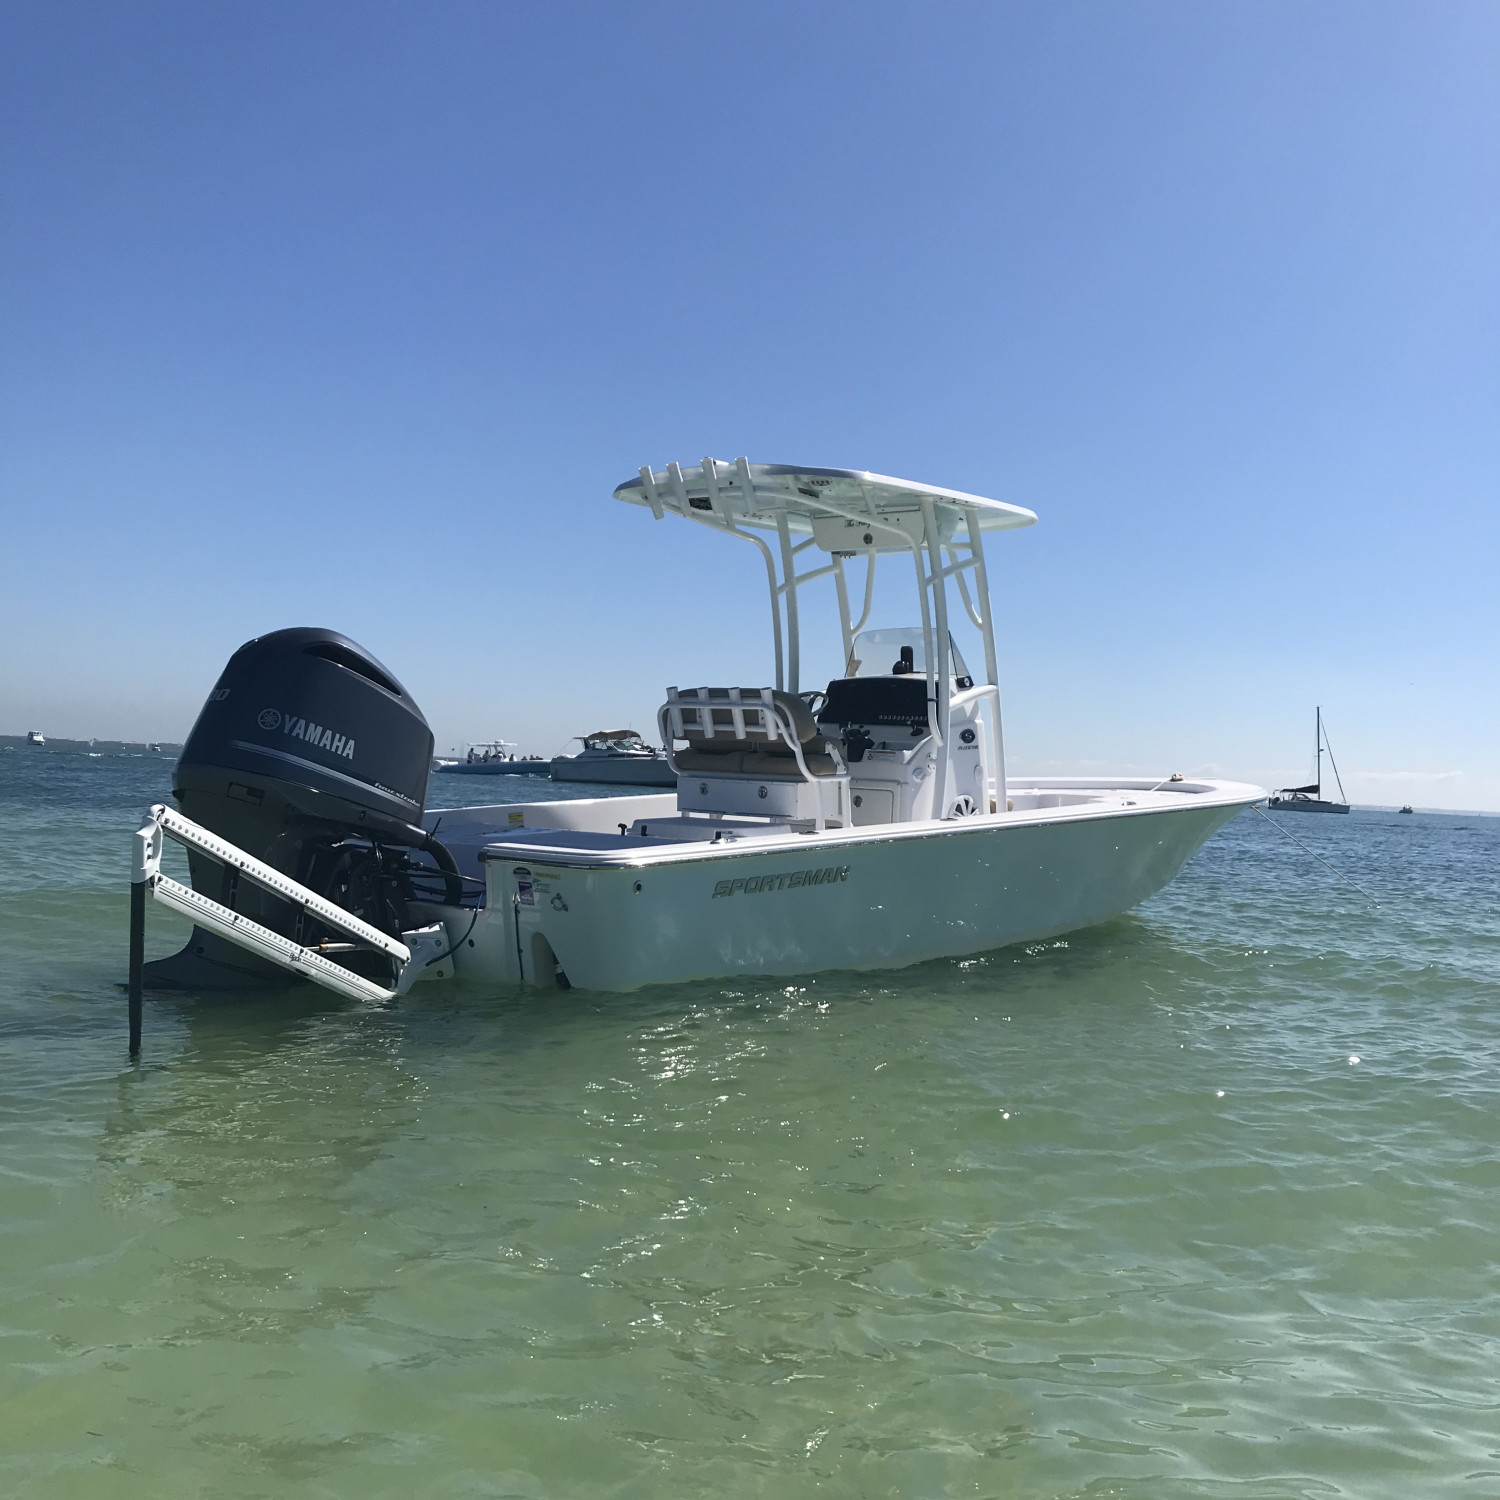 Title: Sunday  funday - On board their Sportsman Masters 247 Bay Boat - Location: Tarpon Springs. Participating in the Photo Contest #SportsmanMarch2018